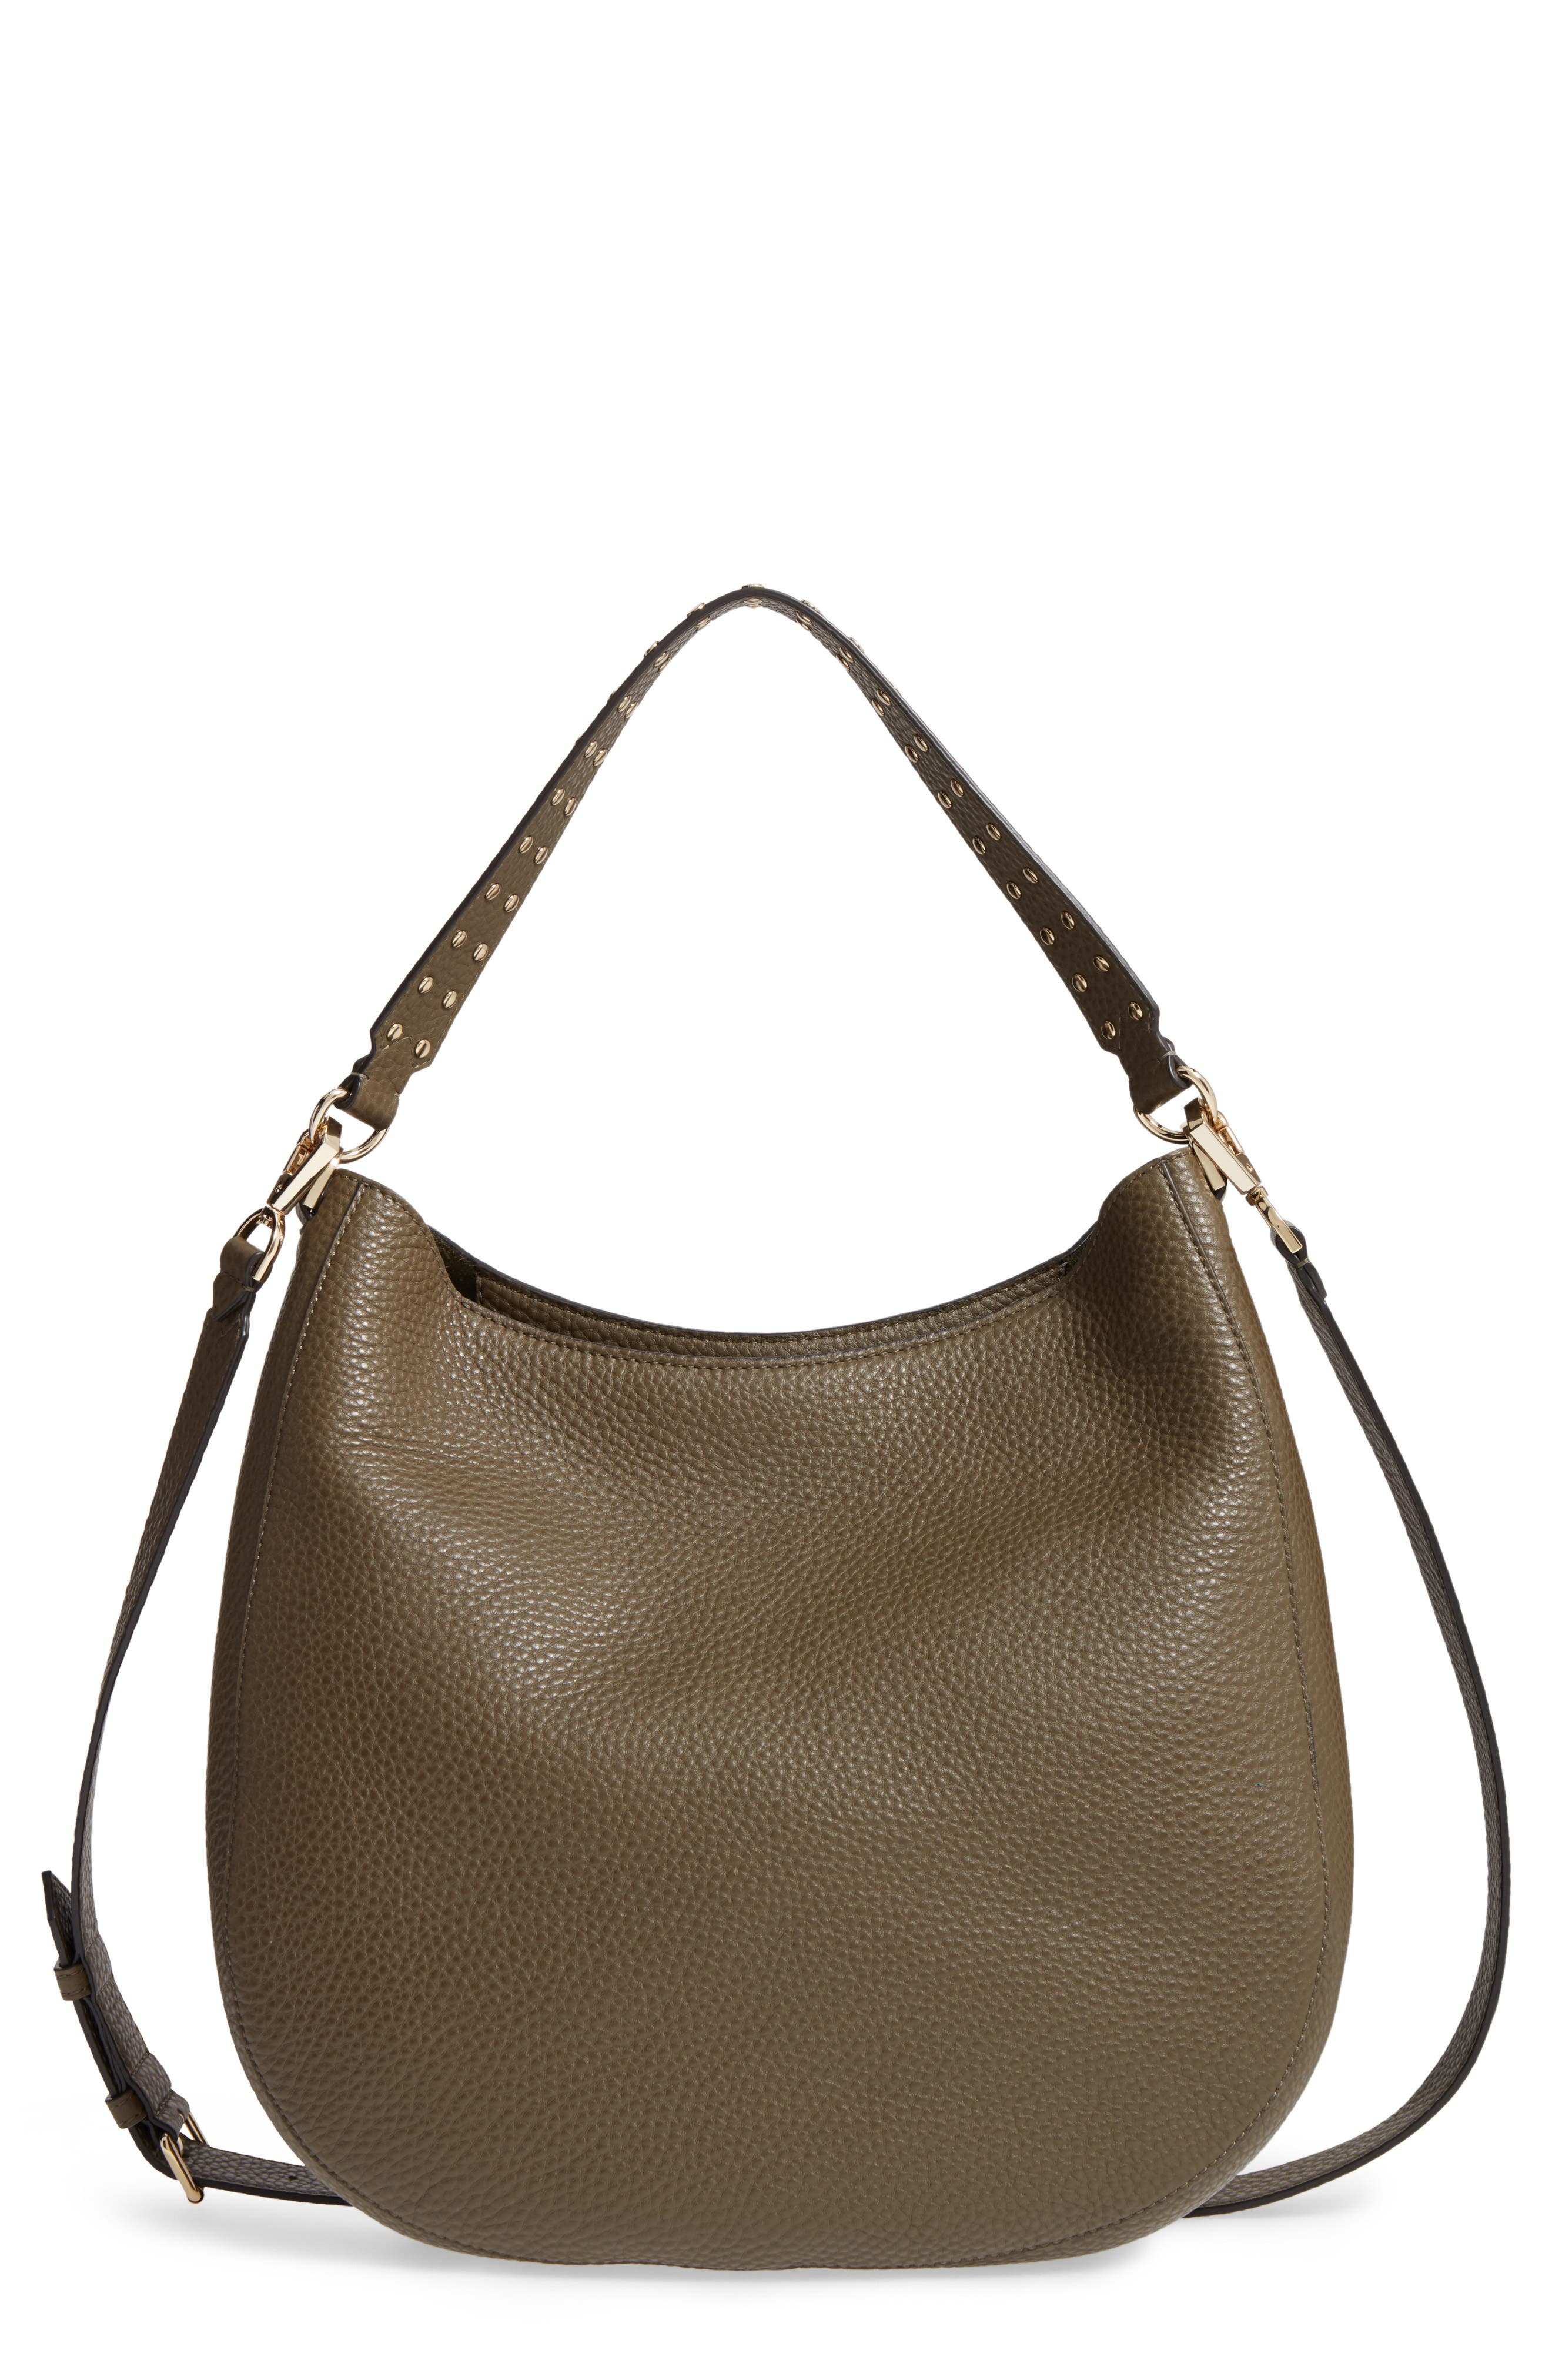 Main Image - Rebecca Minkoff Unlined Convertible Leather Hobo (Nordstrom Exclusive)